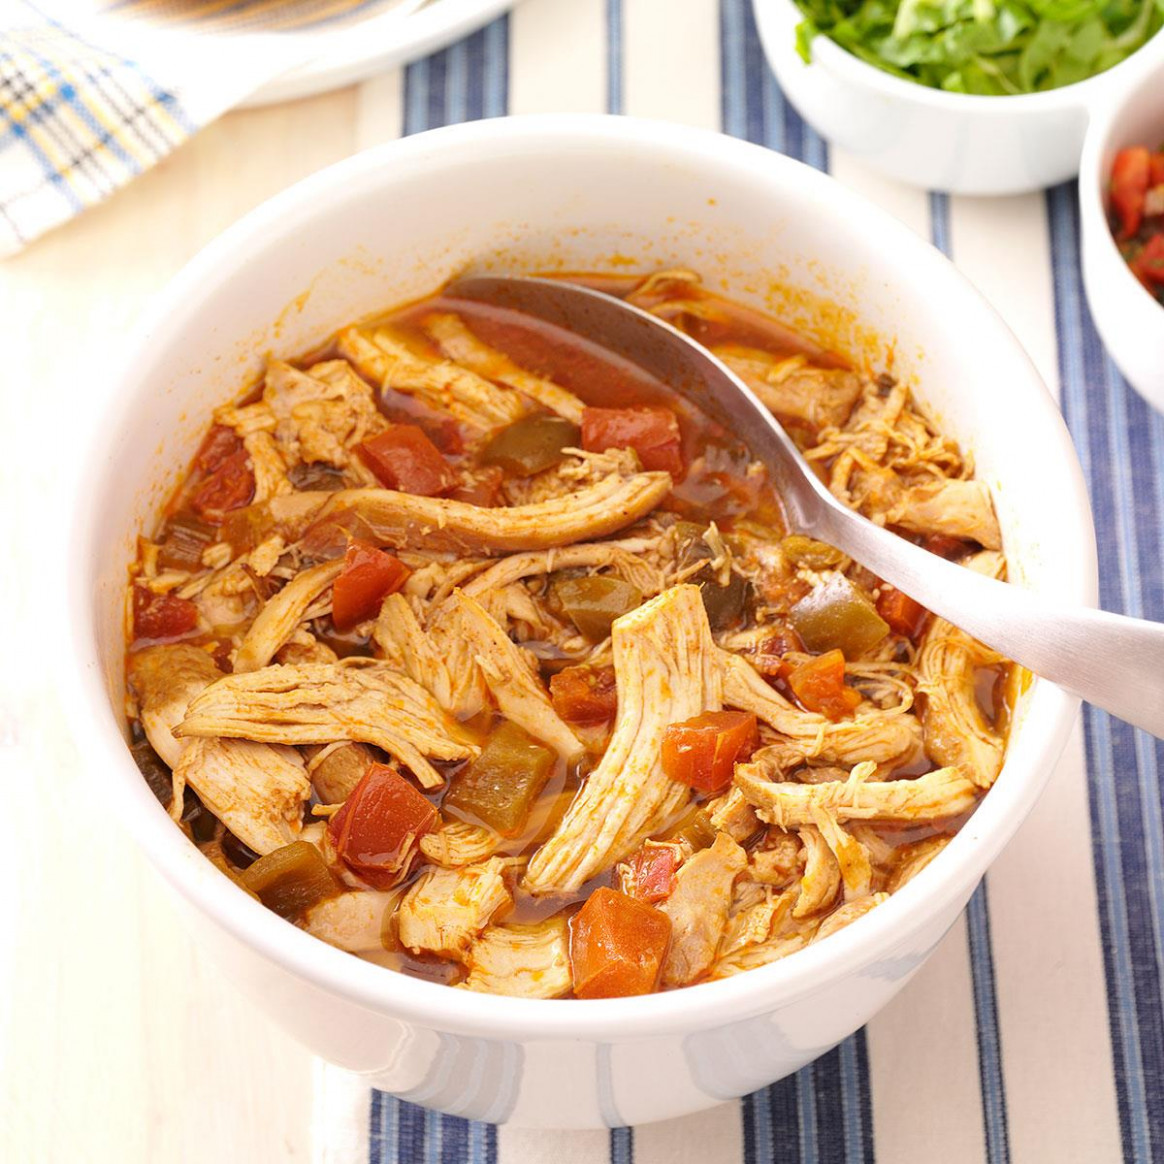 Spicy Shredded Chicken - recipes using cooked chicken